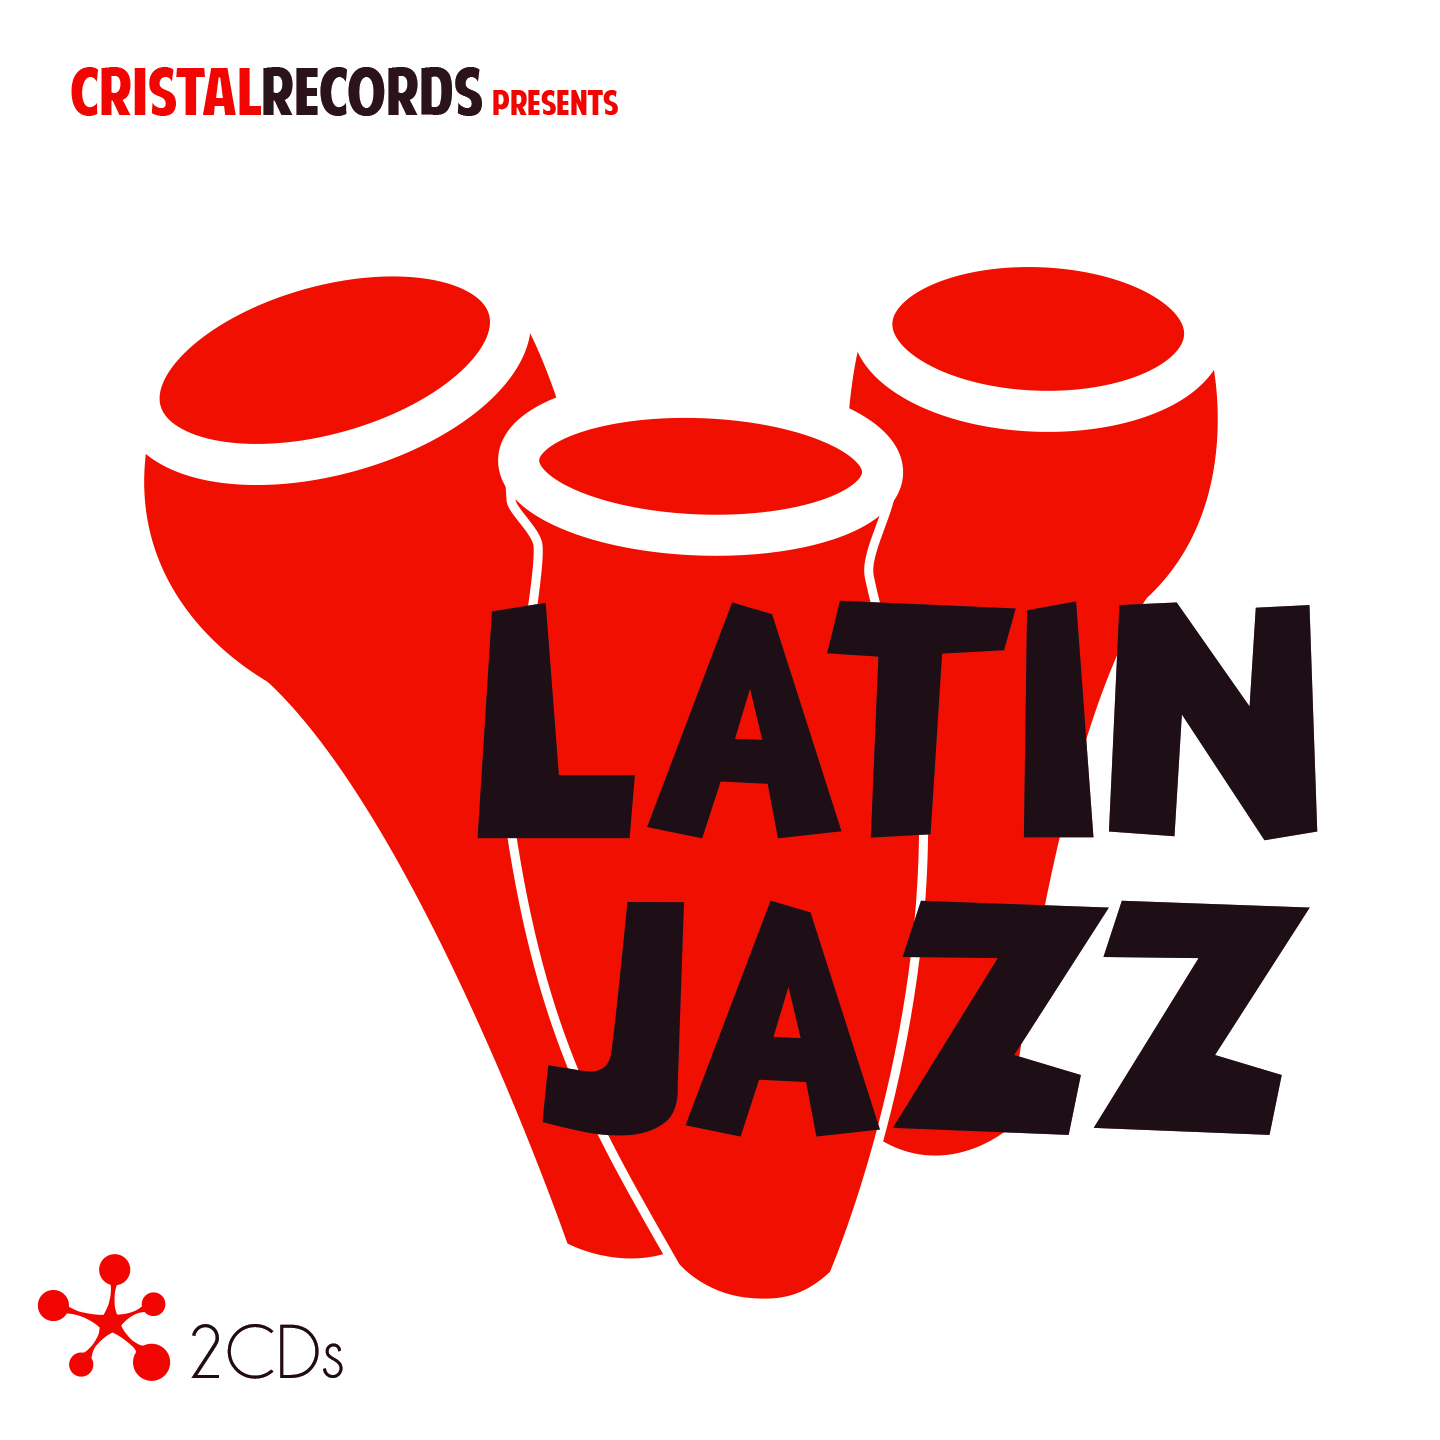 latin jazz Chuchito valdes' father chucho and grandfather bebo are members of the cuban valdes musical dynasty dionisio ramón emilio valdés amaro (october 9, 1918 – march 22, 2013), better known as bebo valdés, was a cuban pianist, bandleader, composer and arranger.